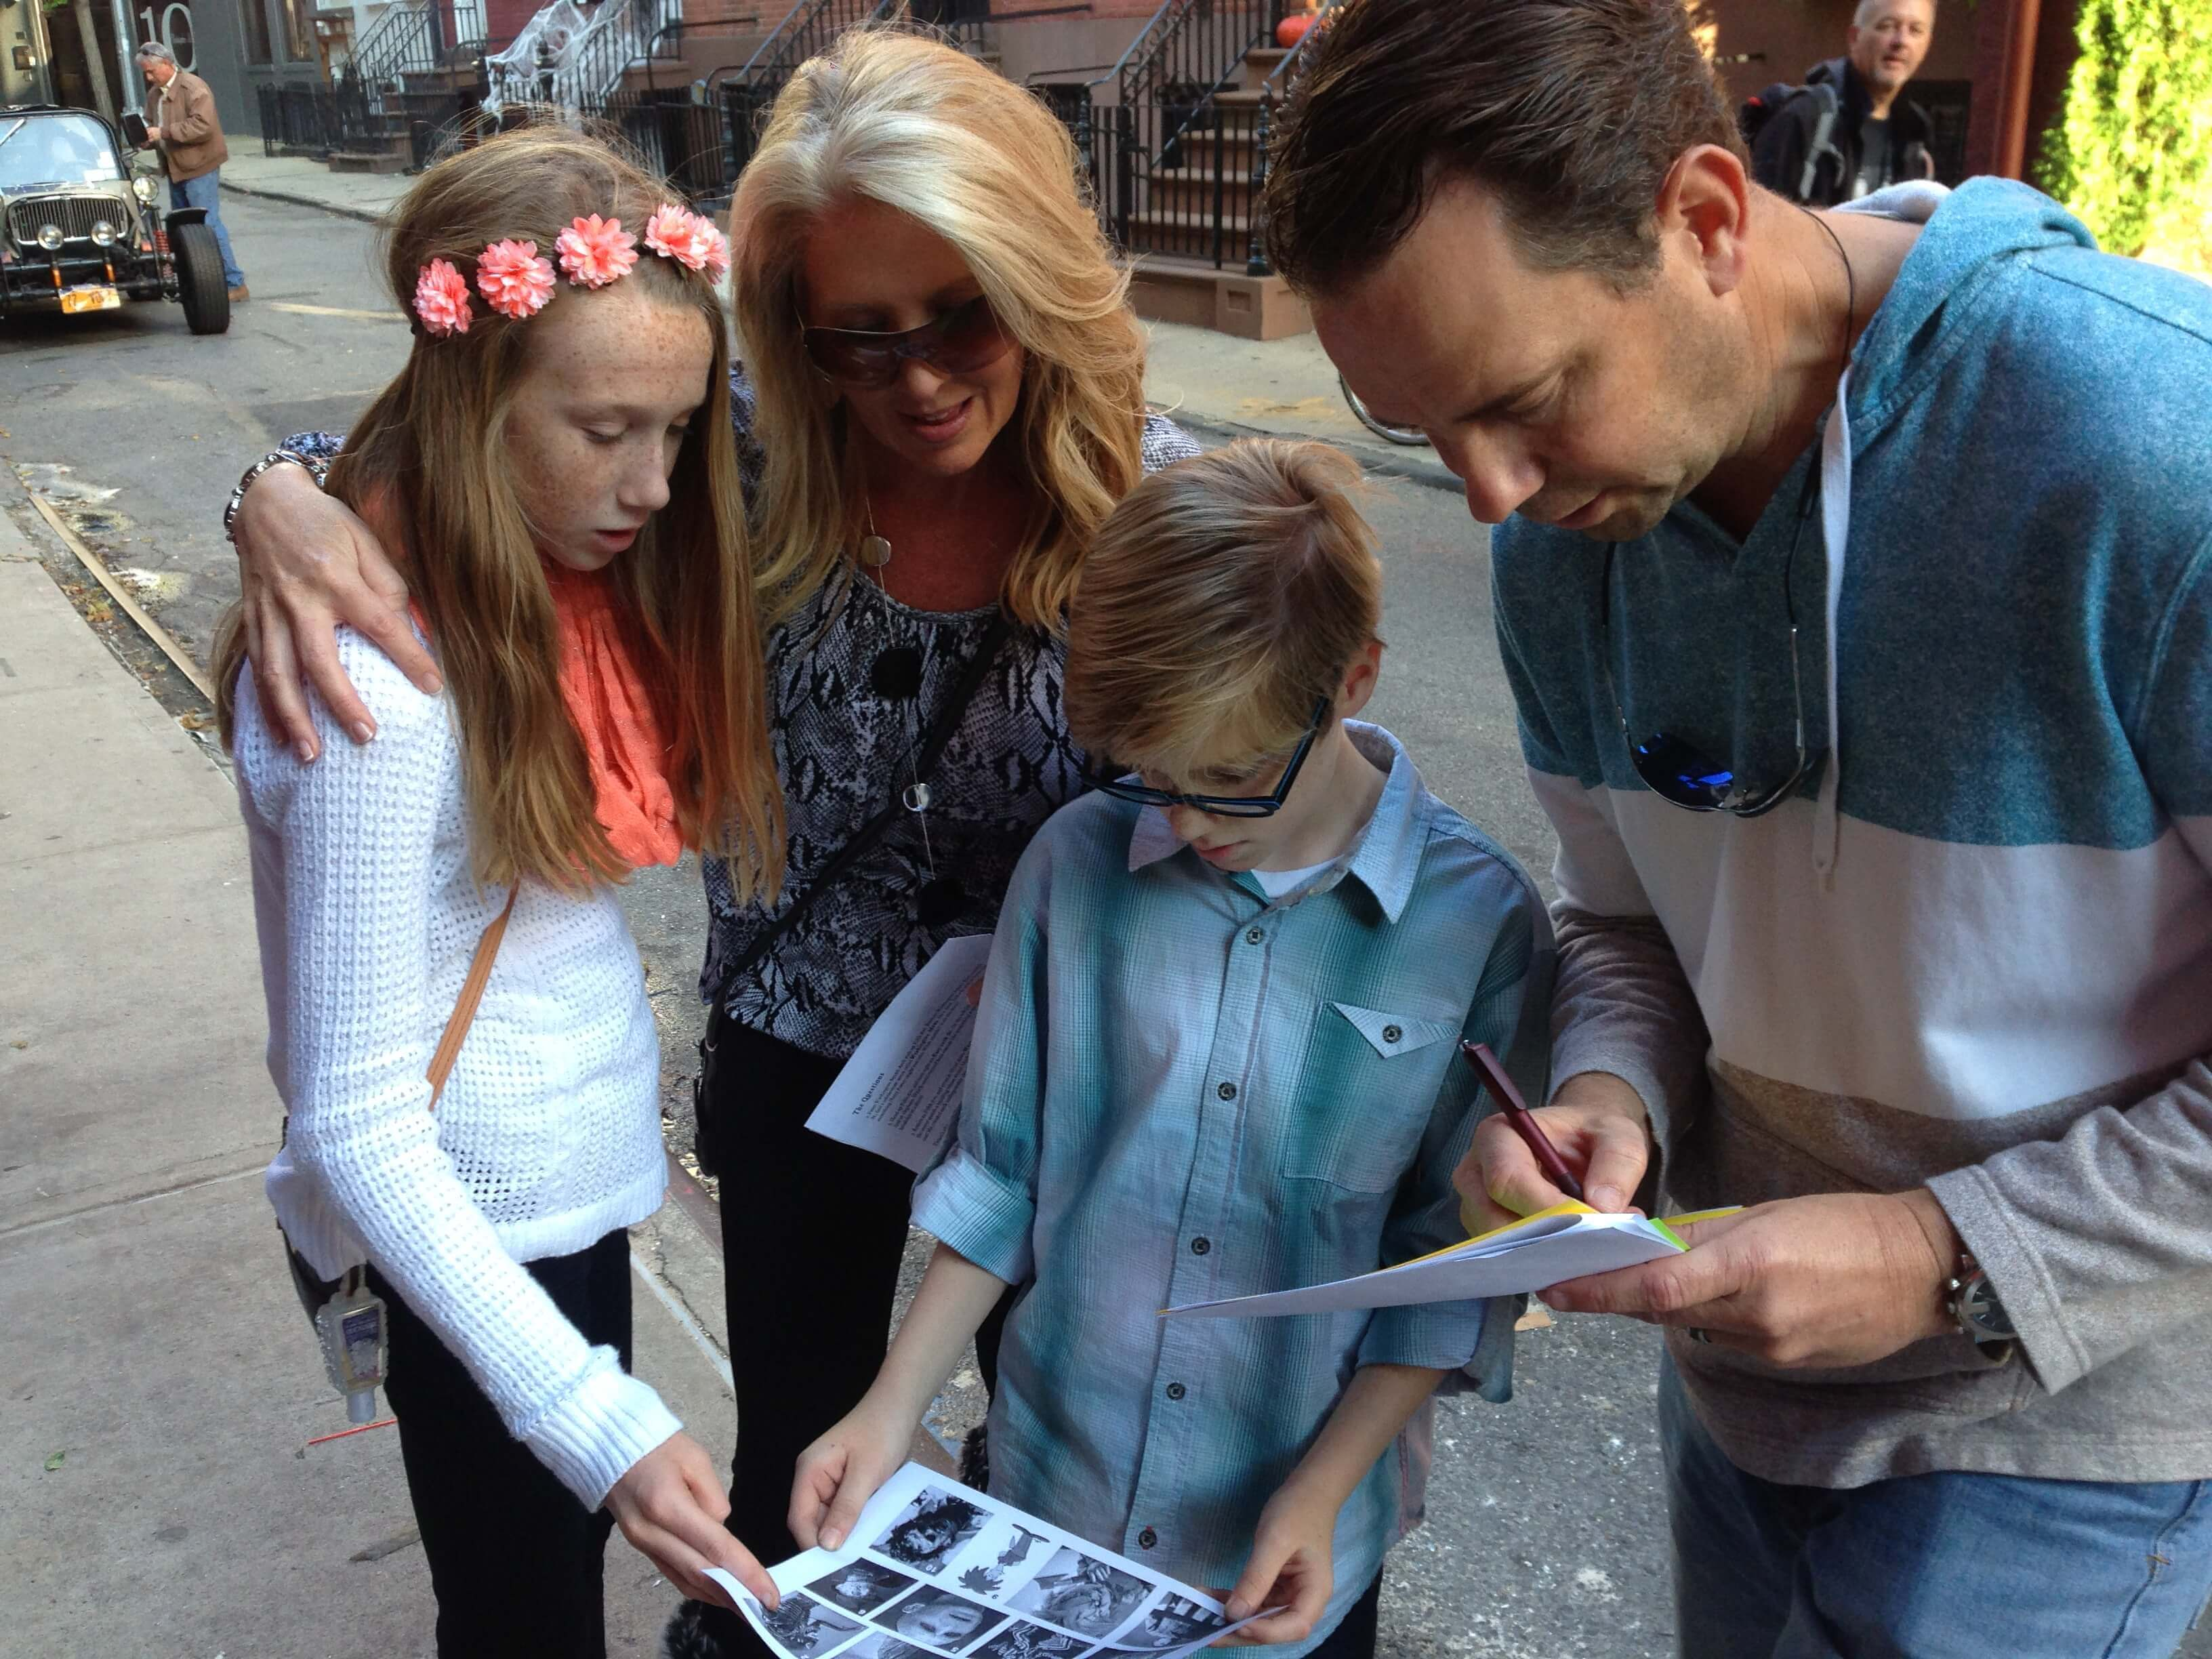 Watson Adventures' Ghosts of Greenwich Village Family Scavenger Hunt at Washington Square Park